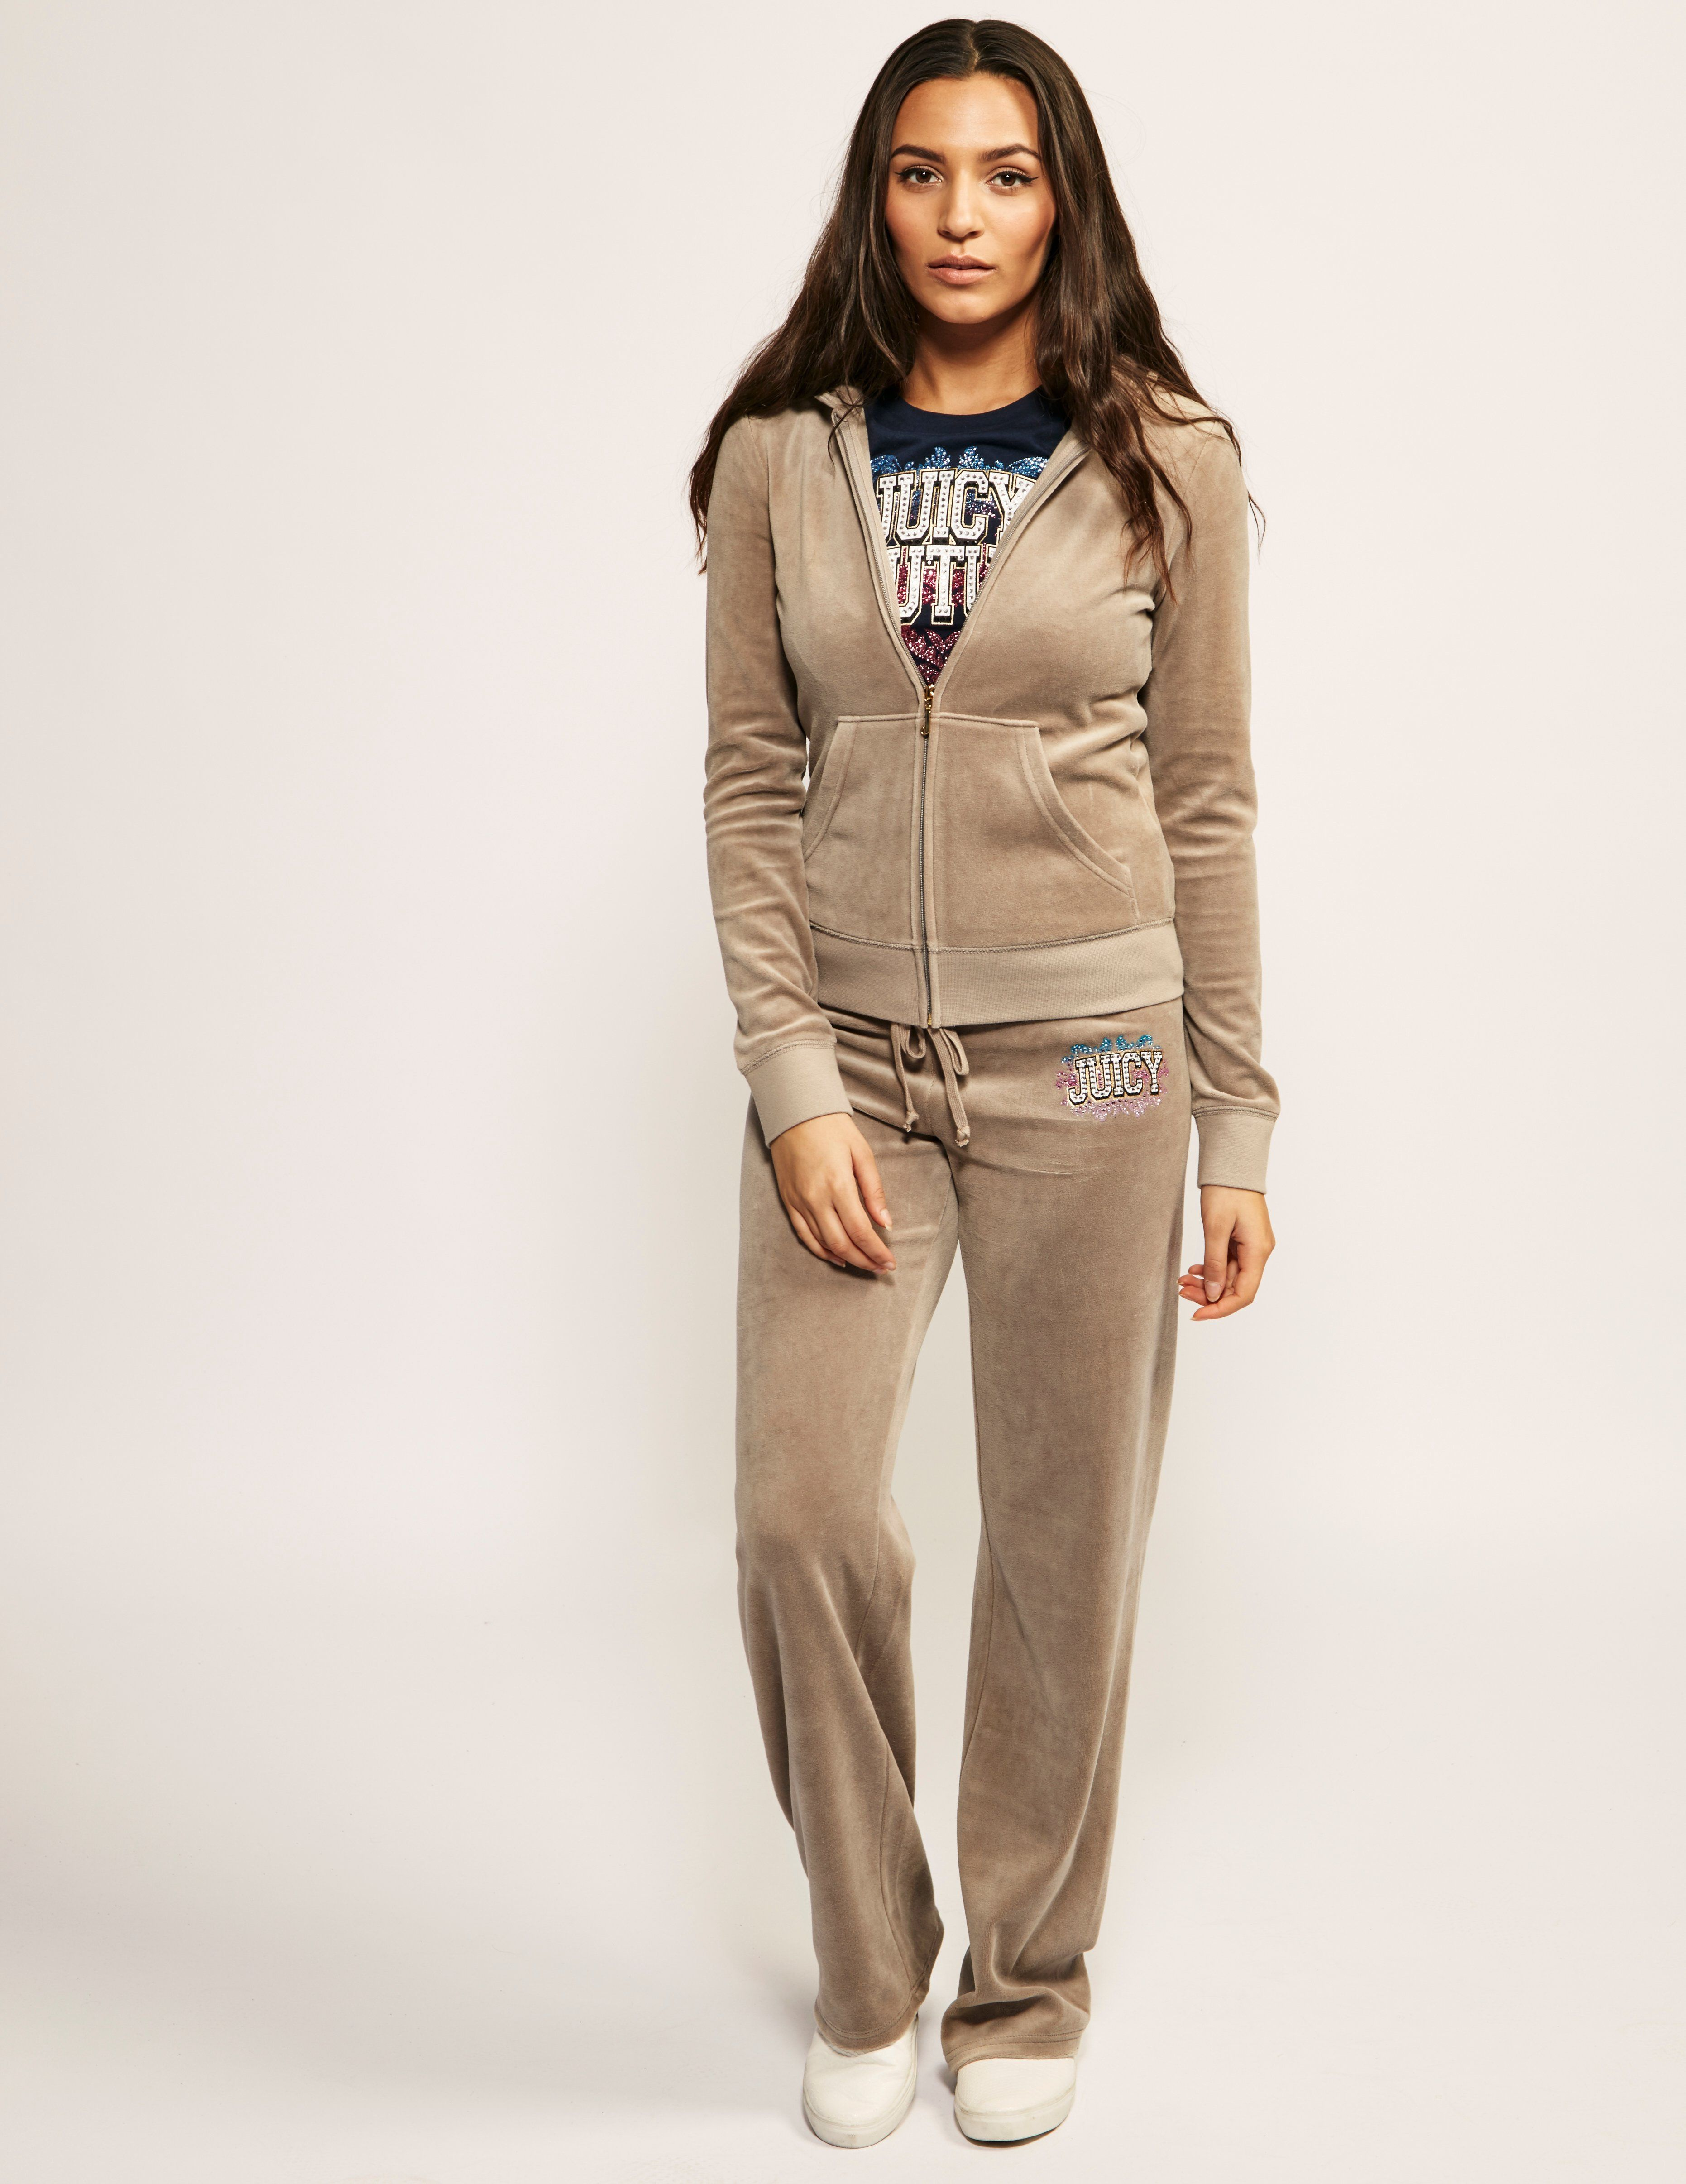 Juicy Couture Collegiate Logo Track Pants